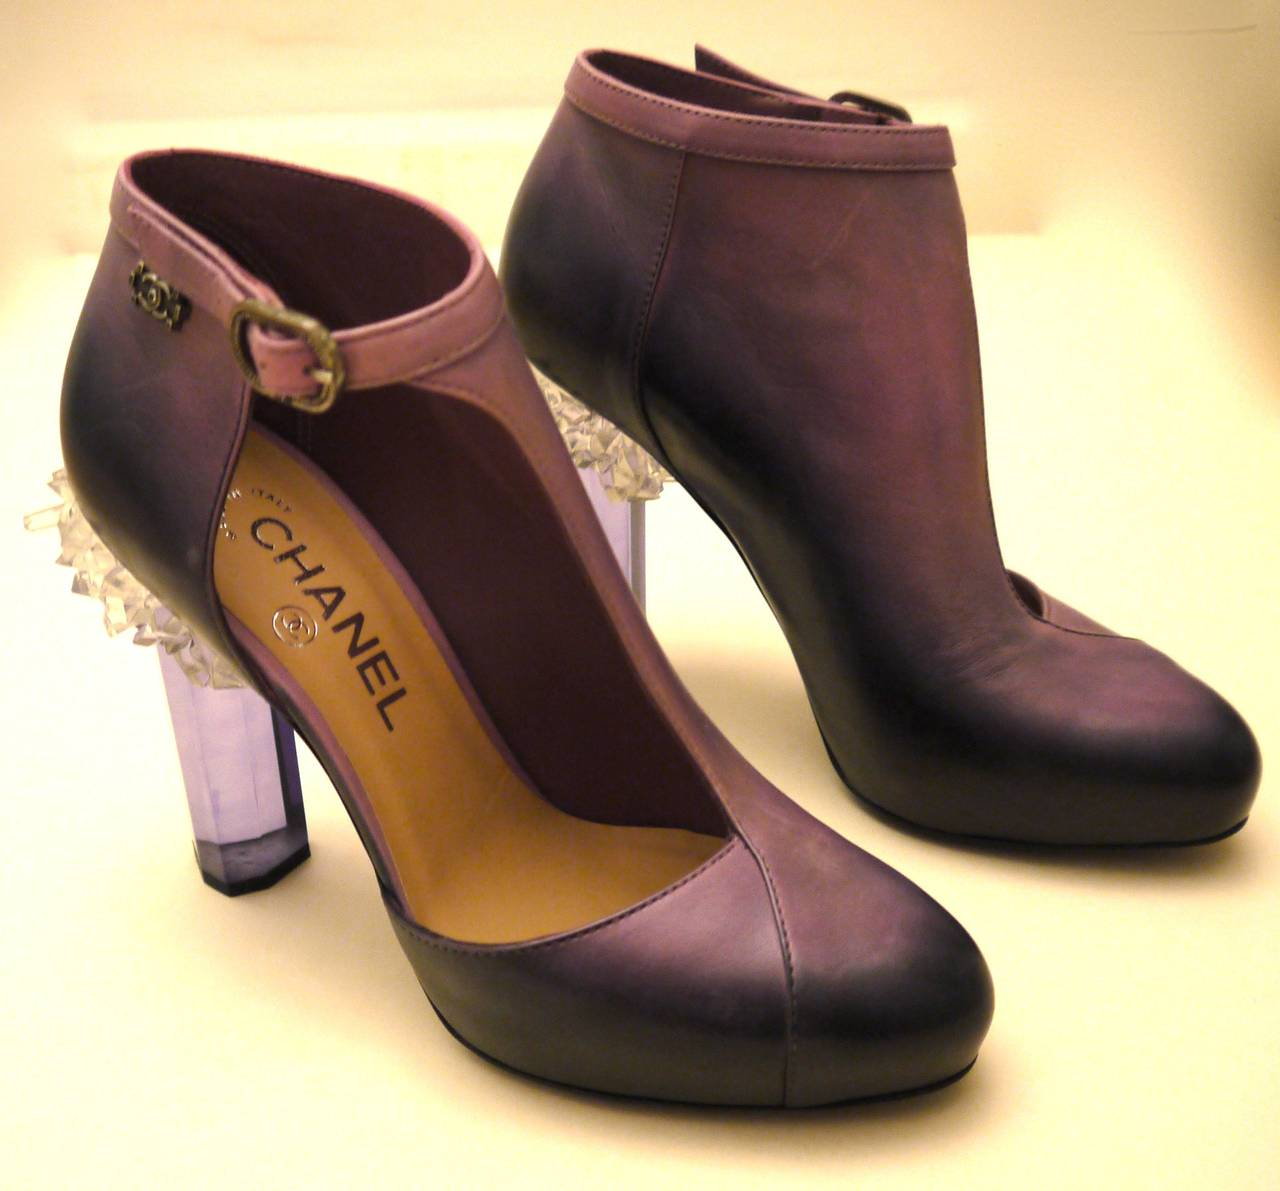 Rare Chanel Runway Boots - Purple and Black - Lucite Heels - Size 37.5 For Sale 1